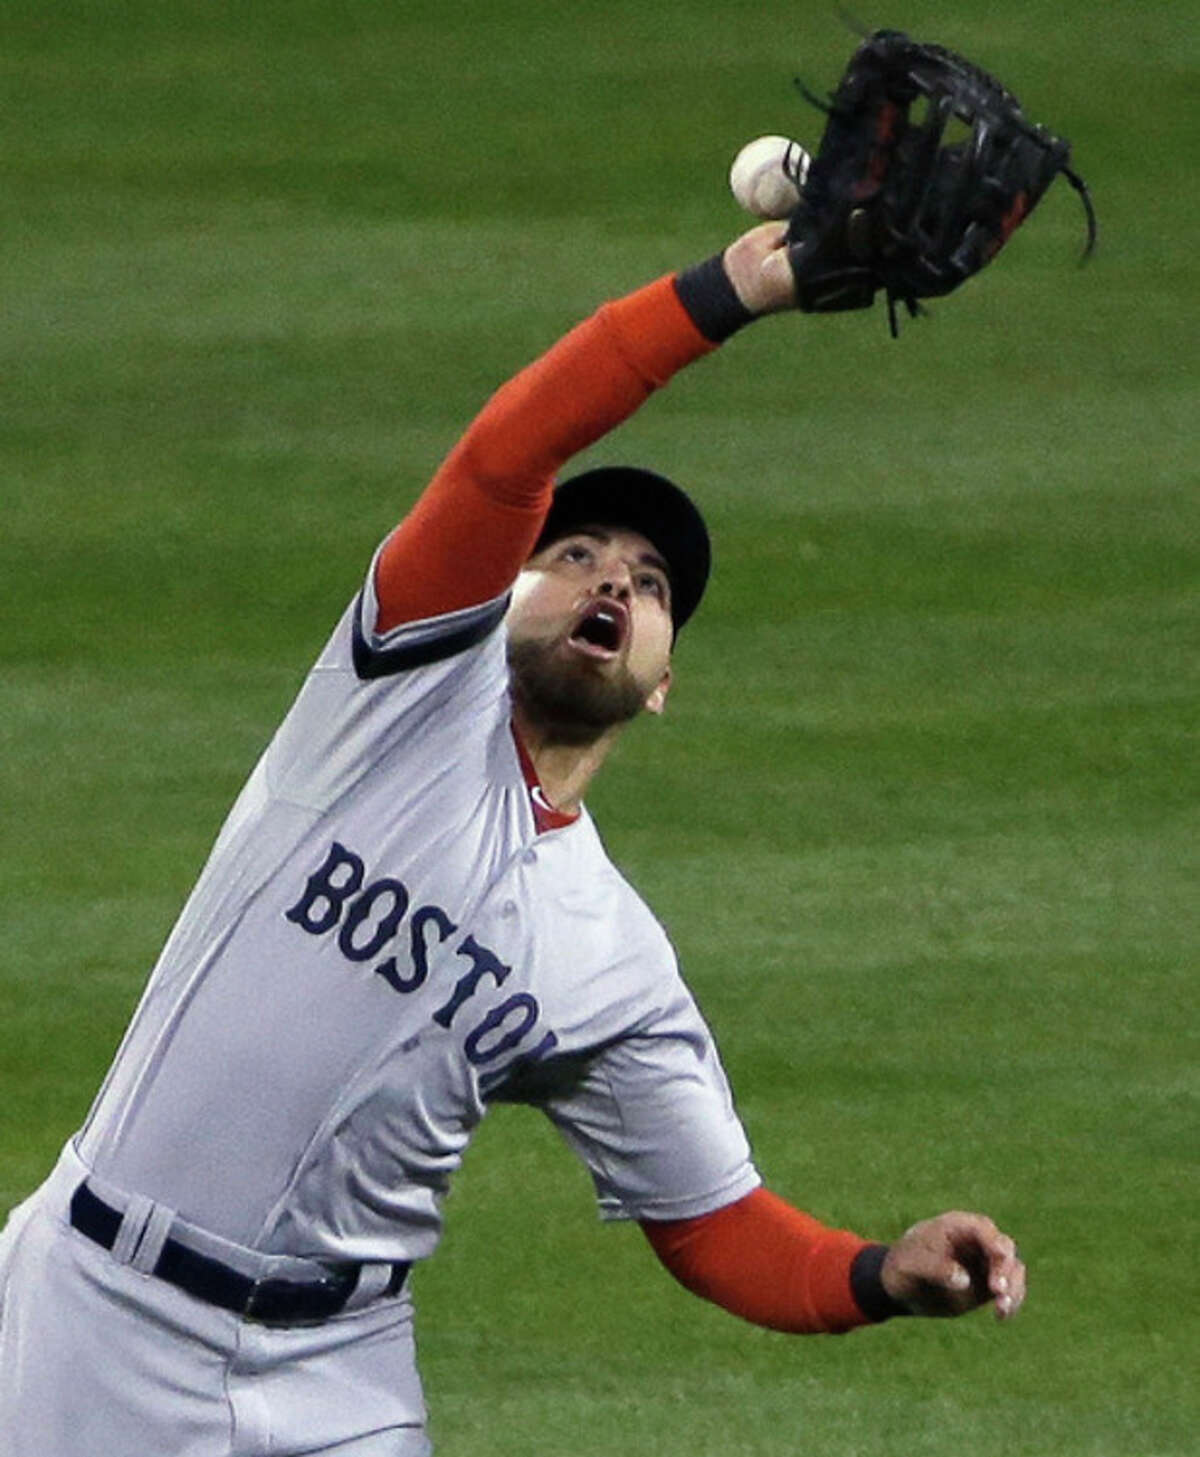 Boston Red Sox's Jacoby Ellsbury can't catch a ball hit by St. Louis Cardinals' Matt Holliday during the third inning of Game 3 of baseball's World Series Saturday, Oct. 26, 2013, in St. Louis. (AP Photo/David J. Phillip)